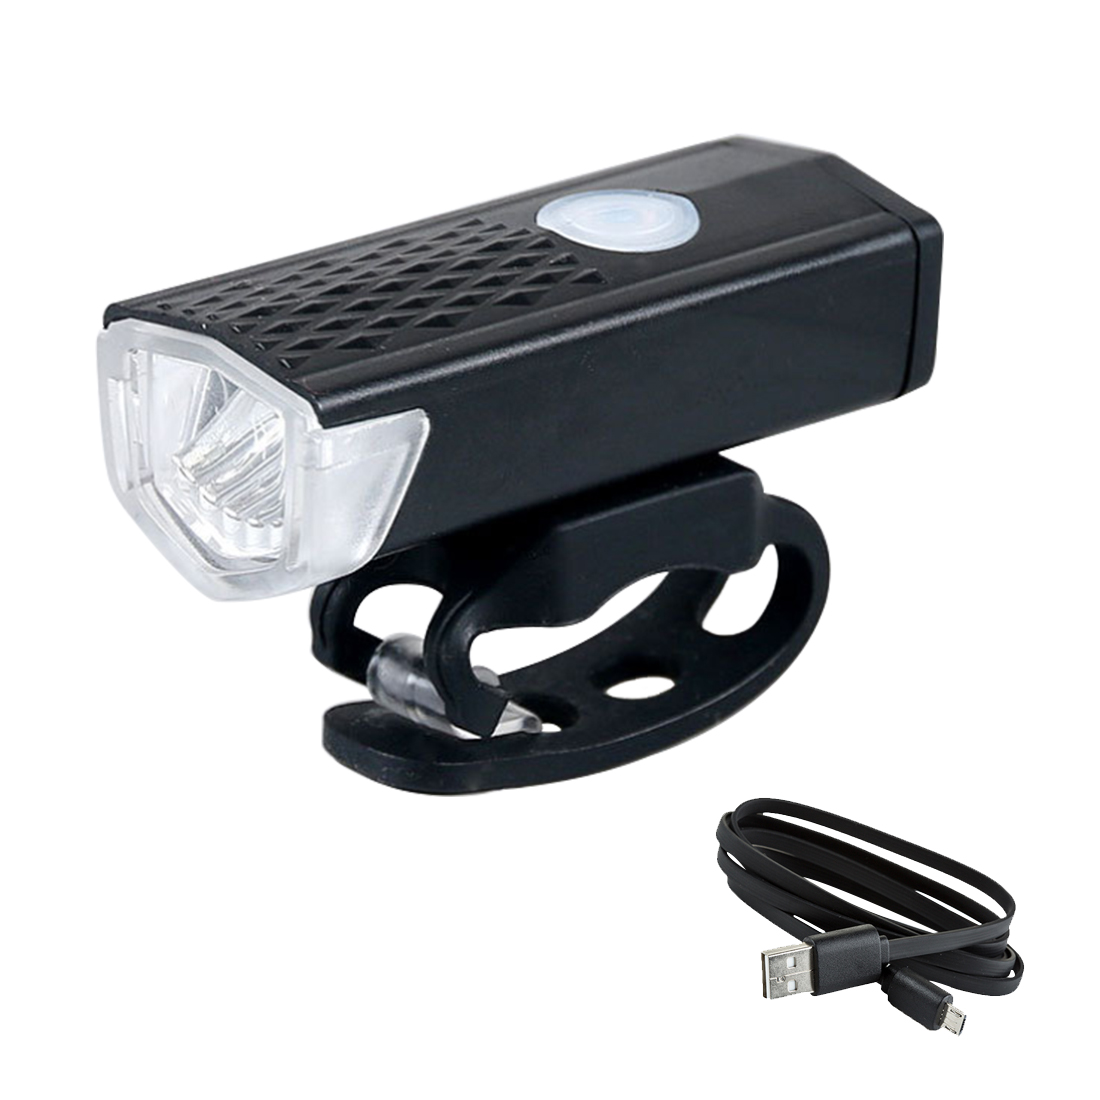 300LM Rechargeable USB LED Bicycle Bike Flashlight Lamp Front Bicycle Cycling Light Headlight luz bicicleta usb